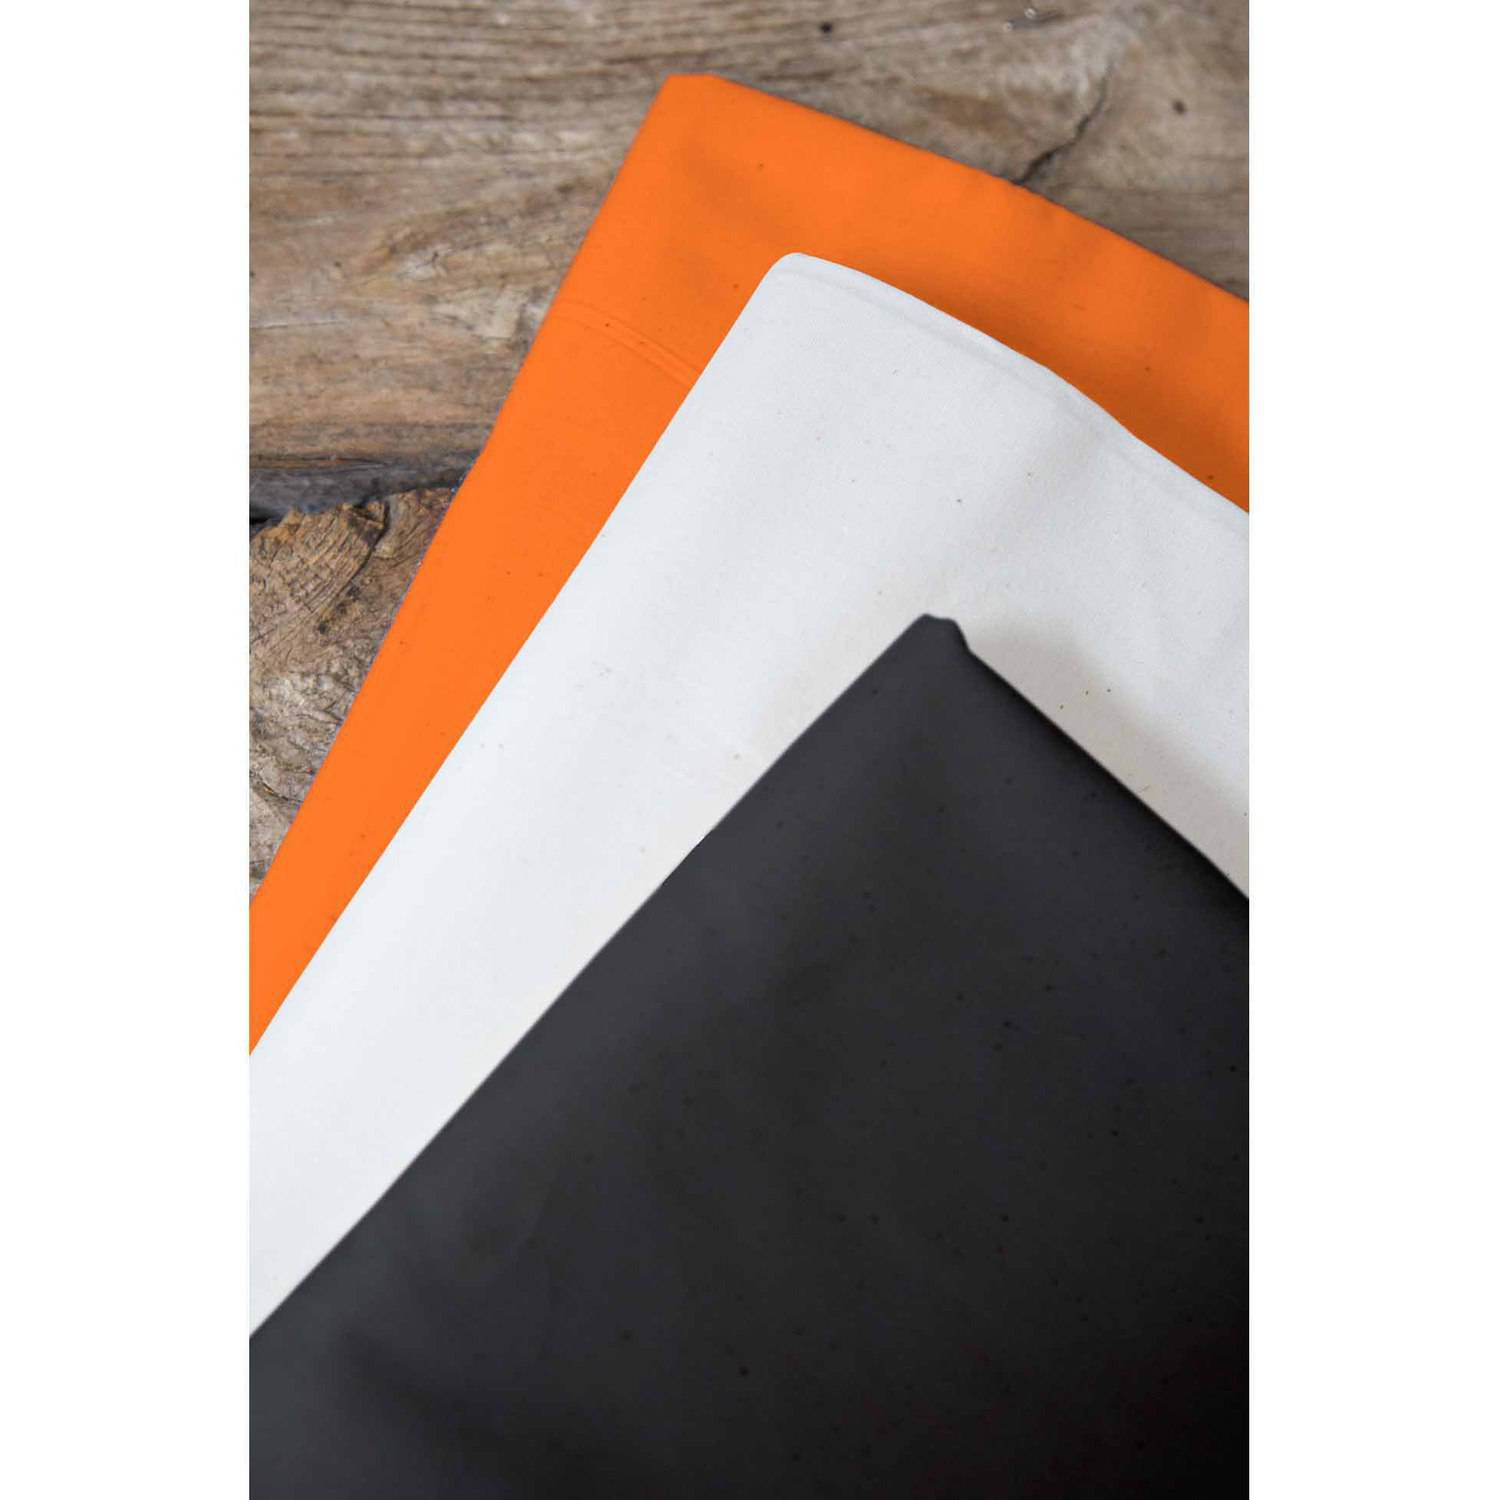 "Spooky Town Palencia Broadcloth Fabric Bundle, Orange Popsicle-White-Black, 44/45"" Width, 2-yd Cuts"